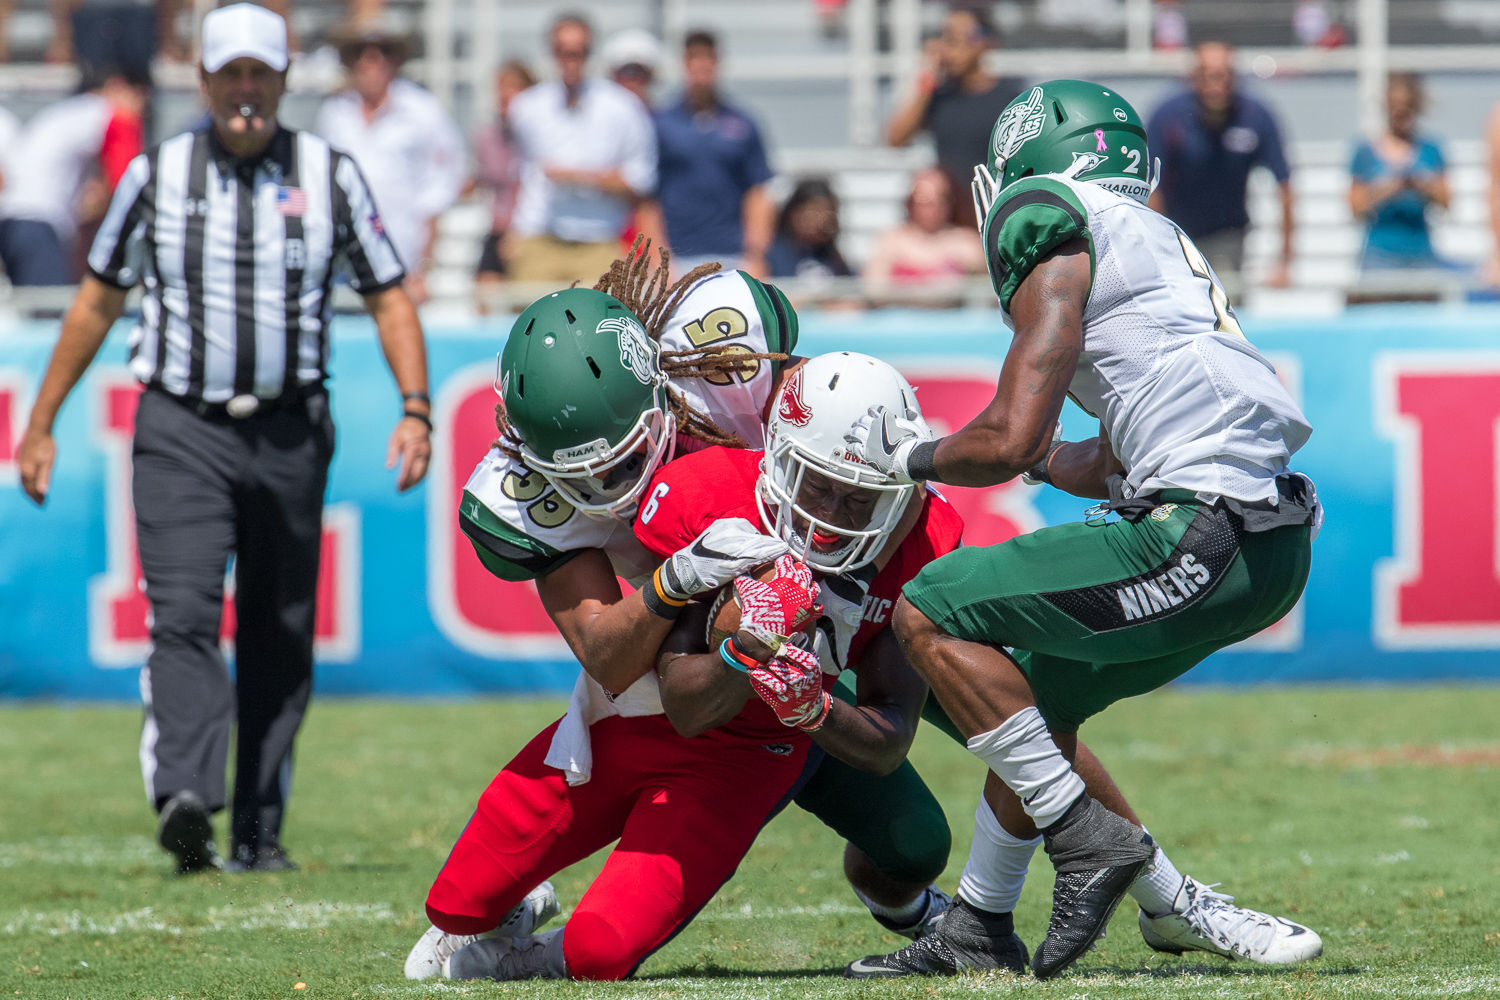 Charlotte redshirt freshman linebacker Tyriq Harris (35) and senior defensive back Kendrick Davis (2) take down FAU redshirt freshman running back Kerrith Whyte.